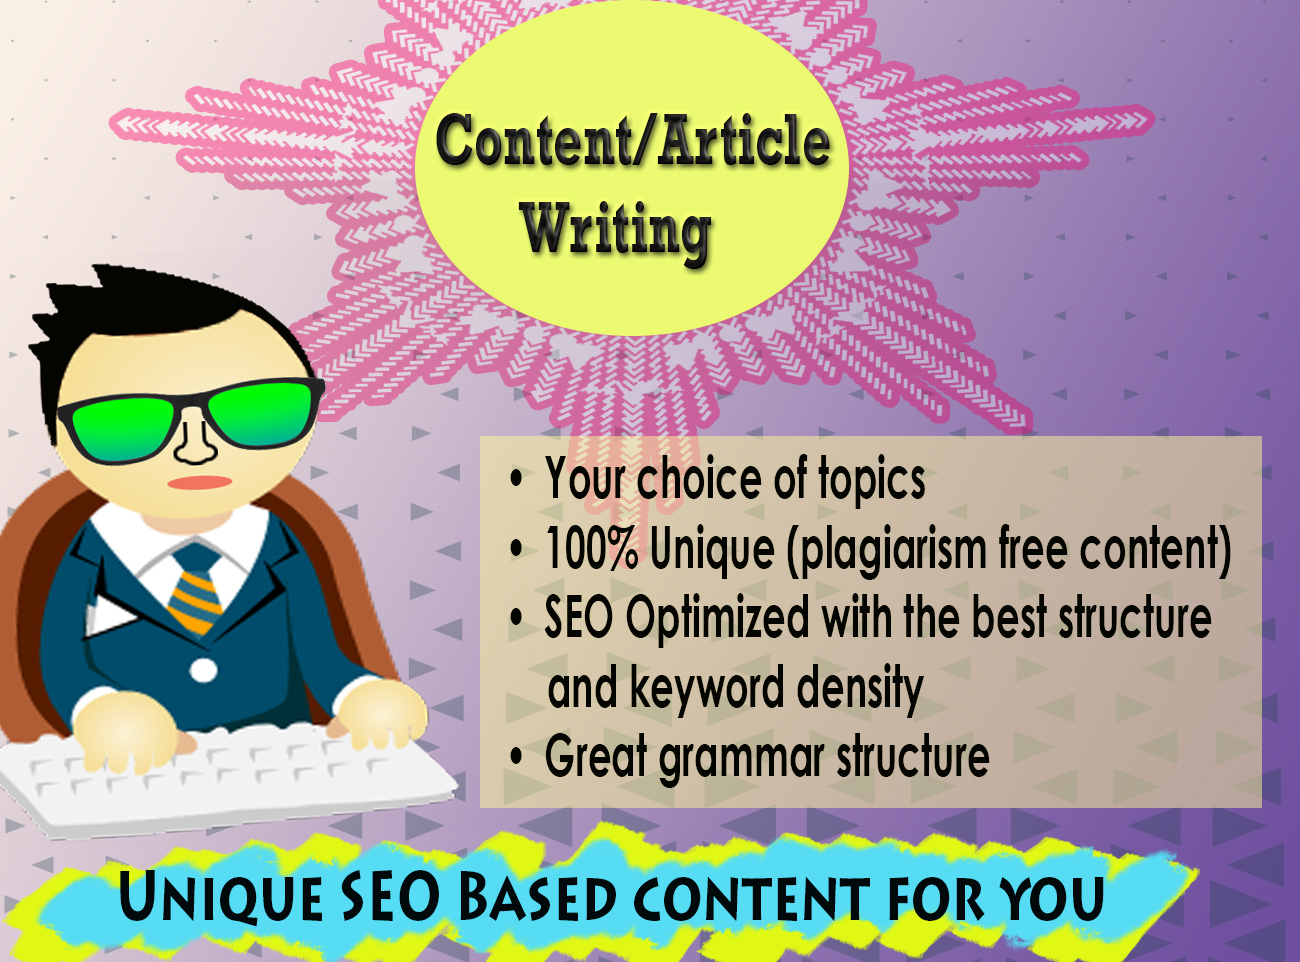 Get strong SEO based content for your related niche